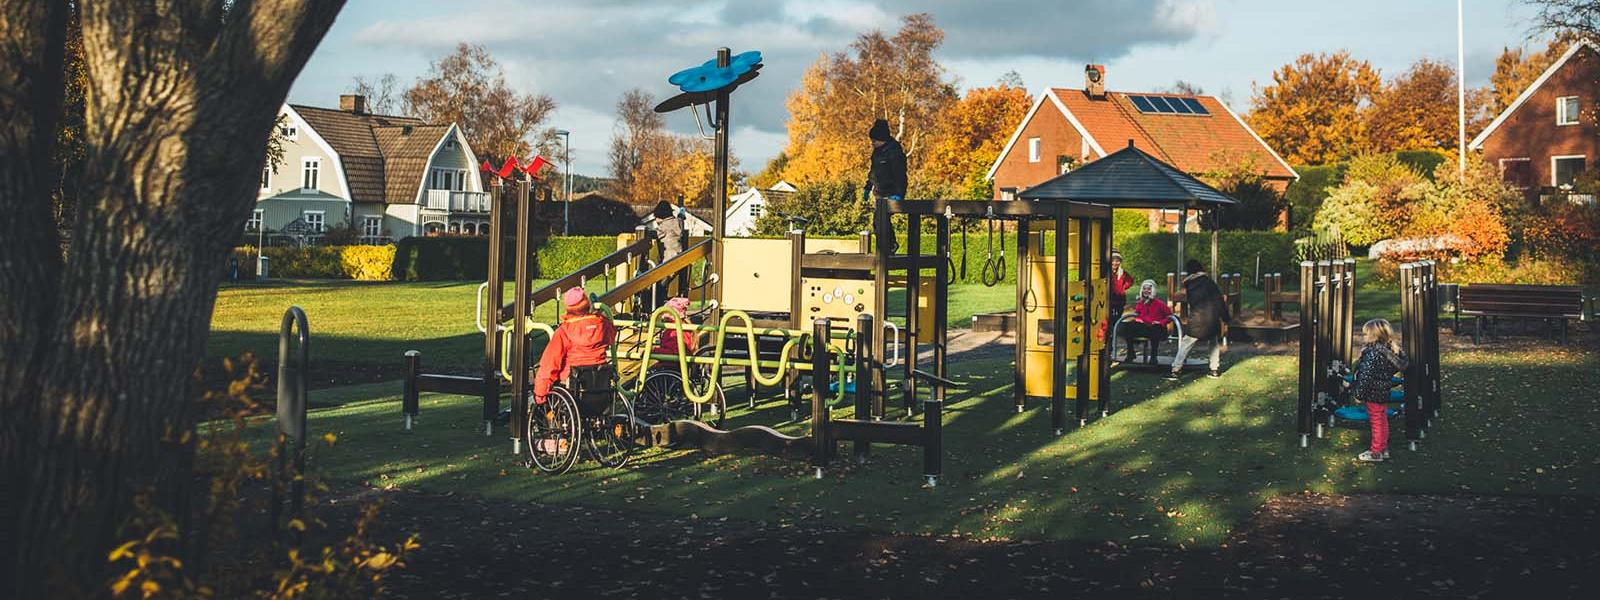 Lappset inclusive design playground